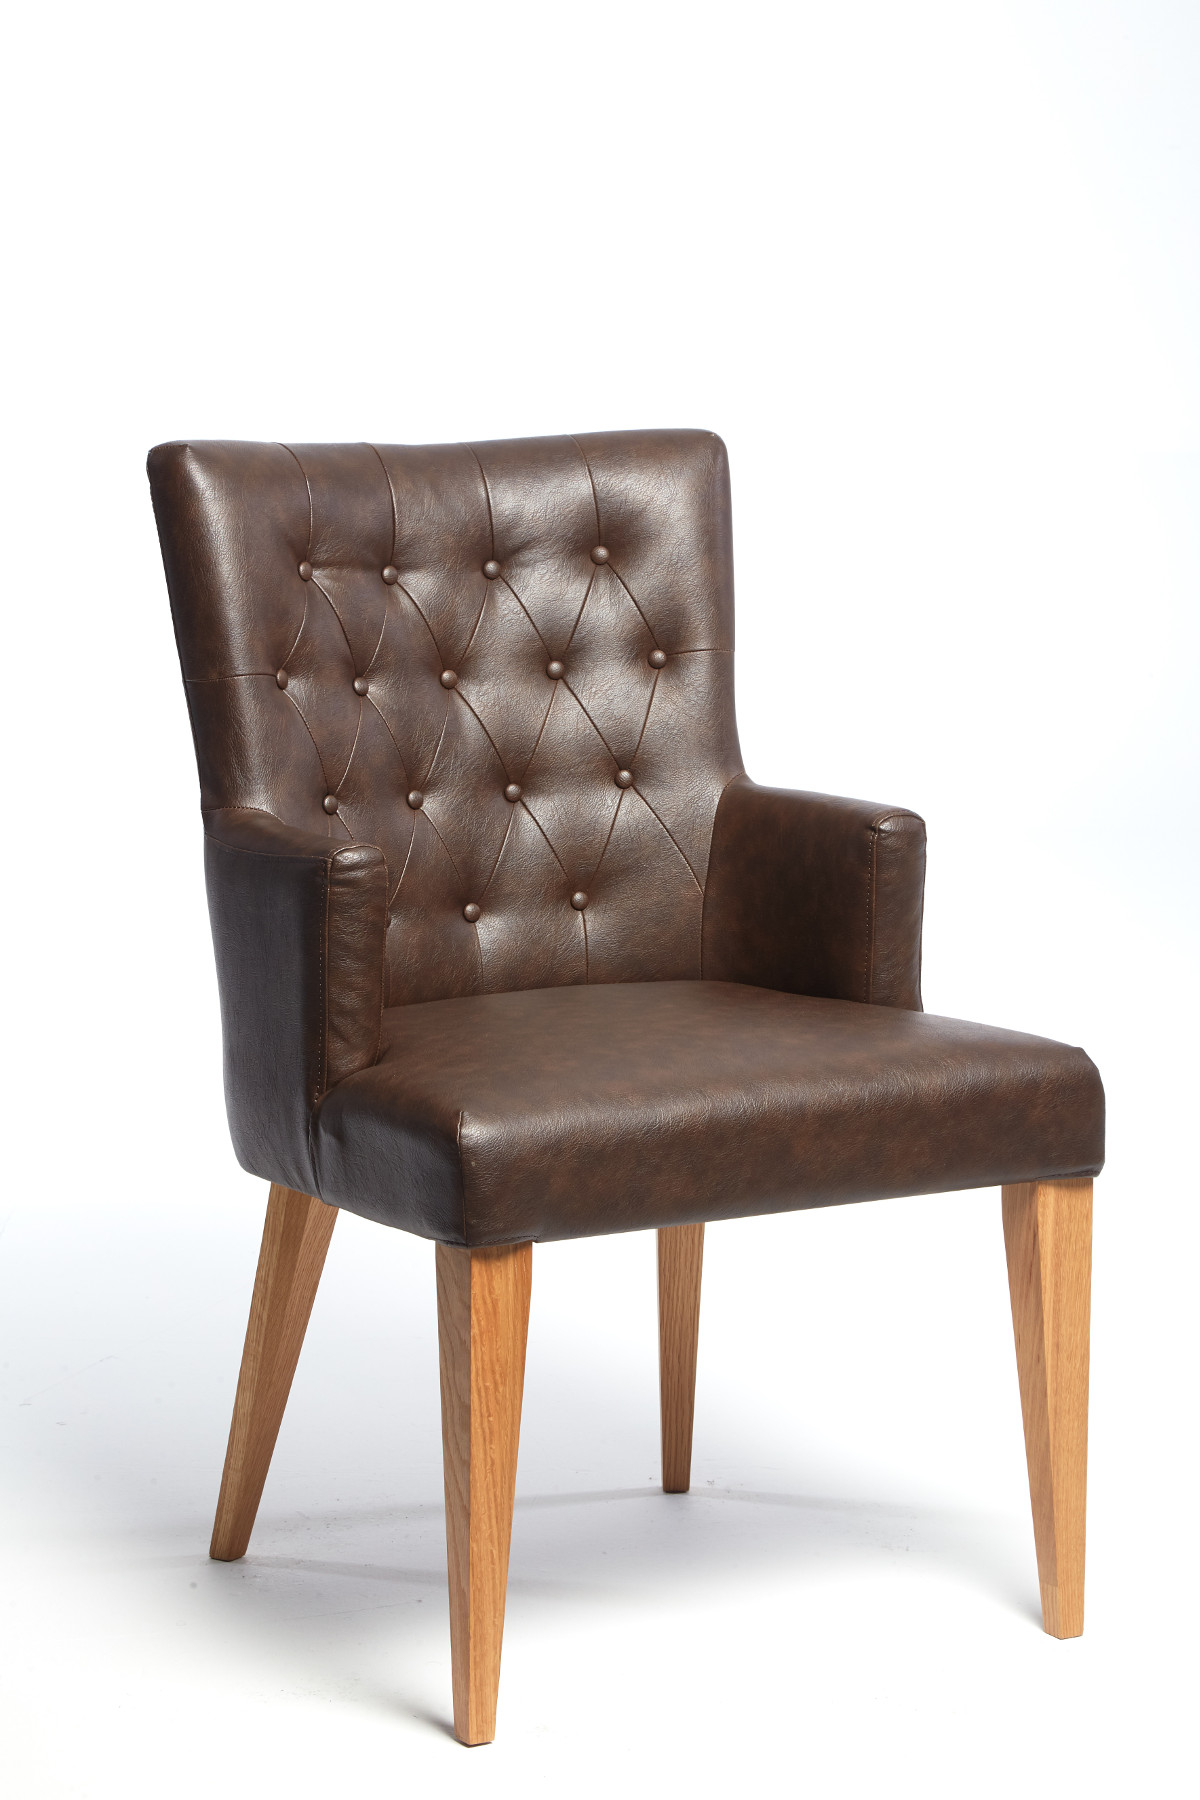 Salerno Upholstered Chair